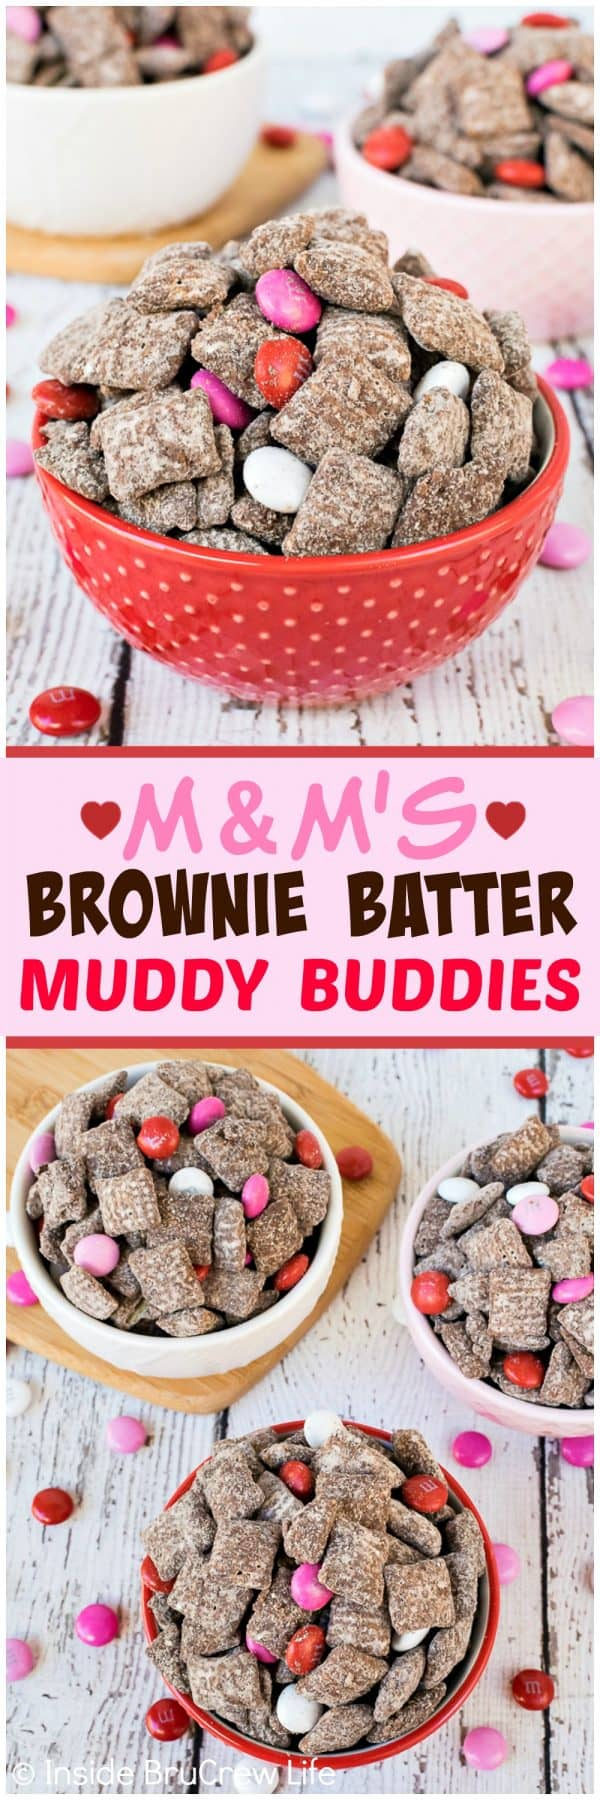 M&M's Brownie Batter Muddy Buddies - this easy no bake snack mix is loaded with chocolate candies and brownie flavor. Great recipe to make and eat in under ten minutes! #brownie #snackmix #nobake #muddybuddies #puppychow #chex #mms #valentinesday #easysnack #dessert